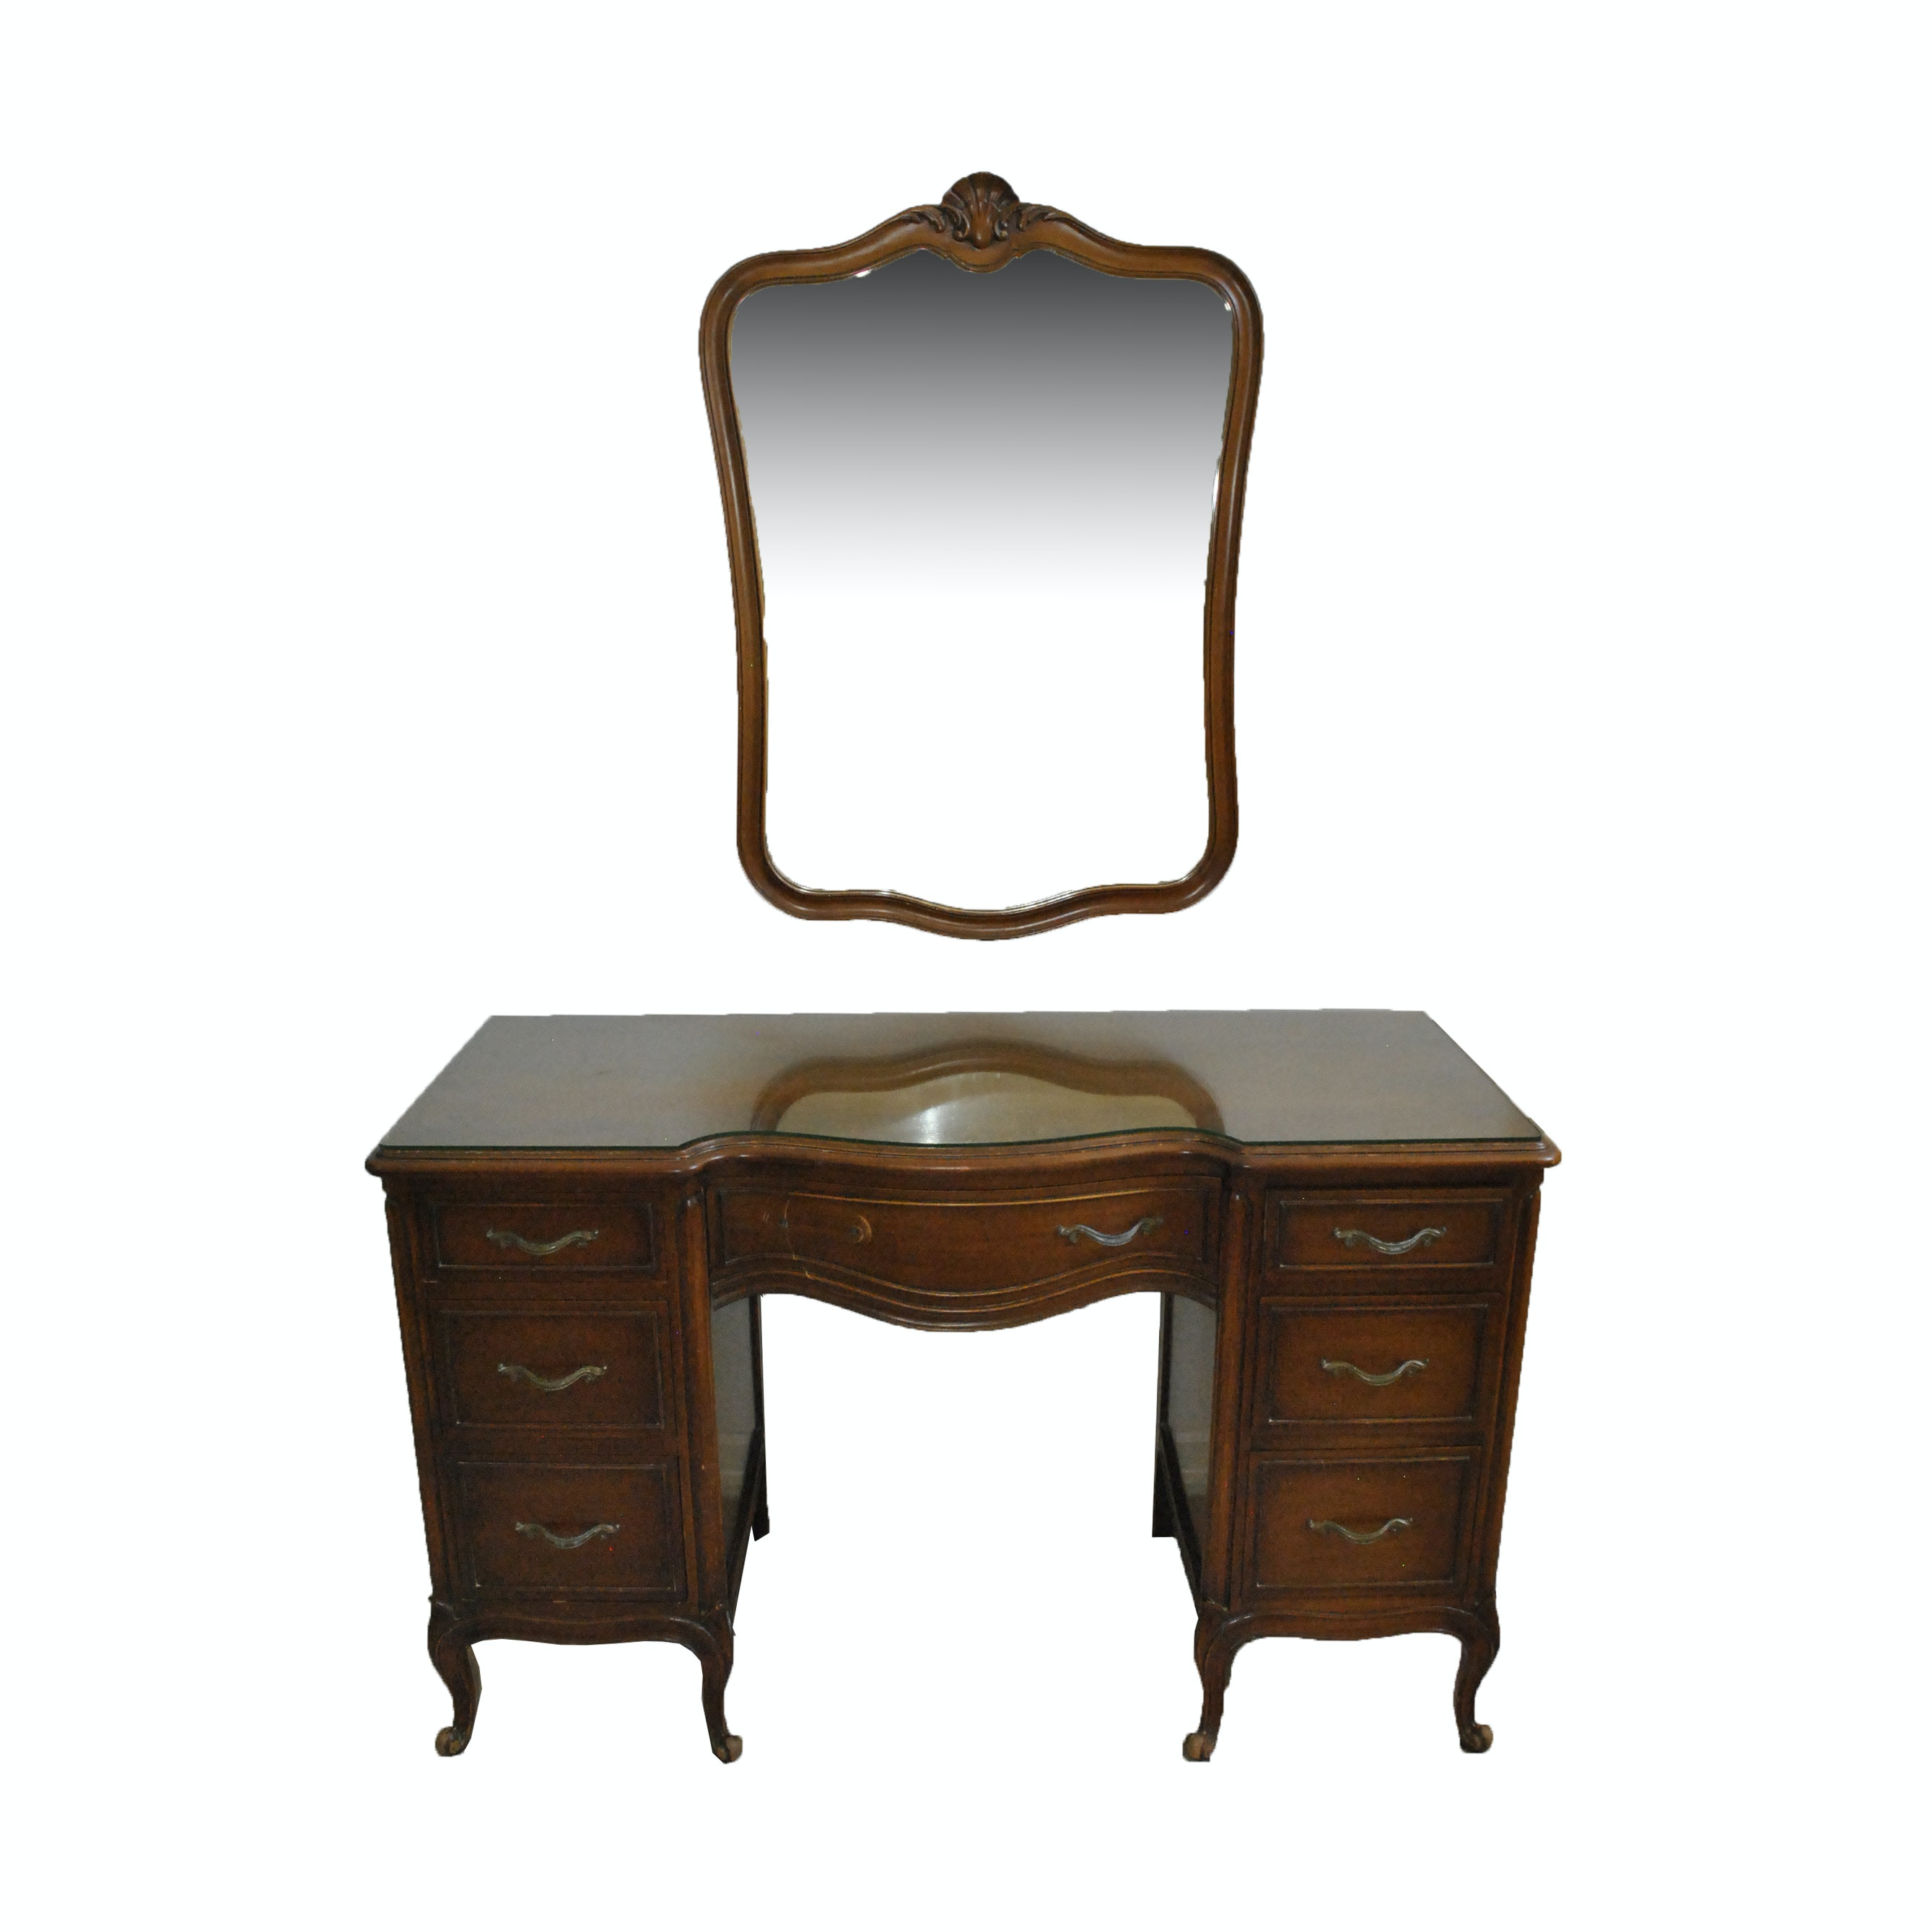 French Provincial Style Desk/ Vanity by Suniland